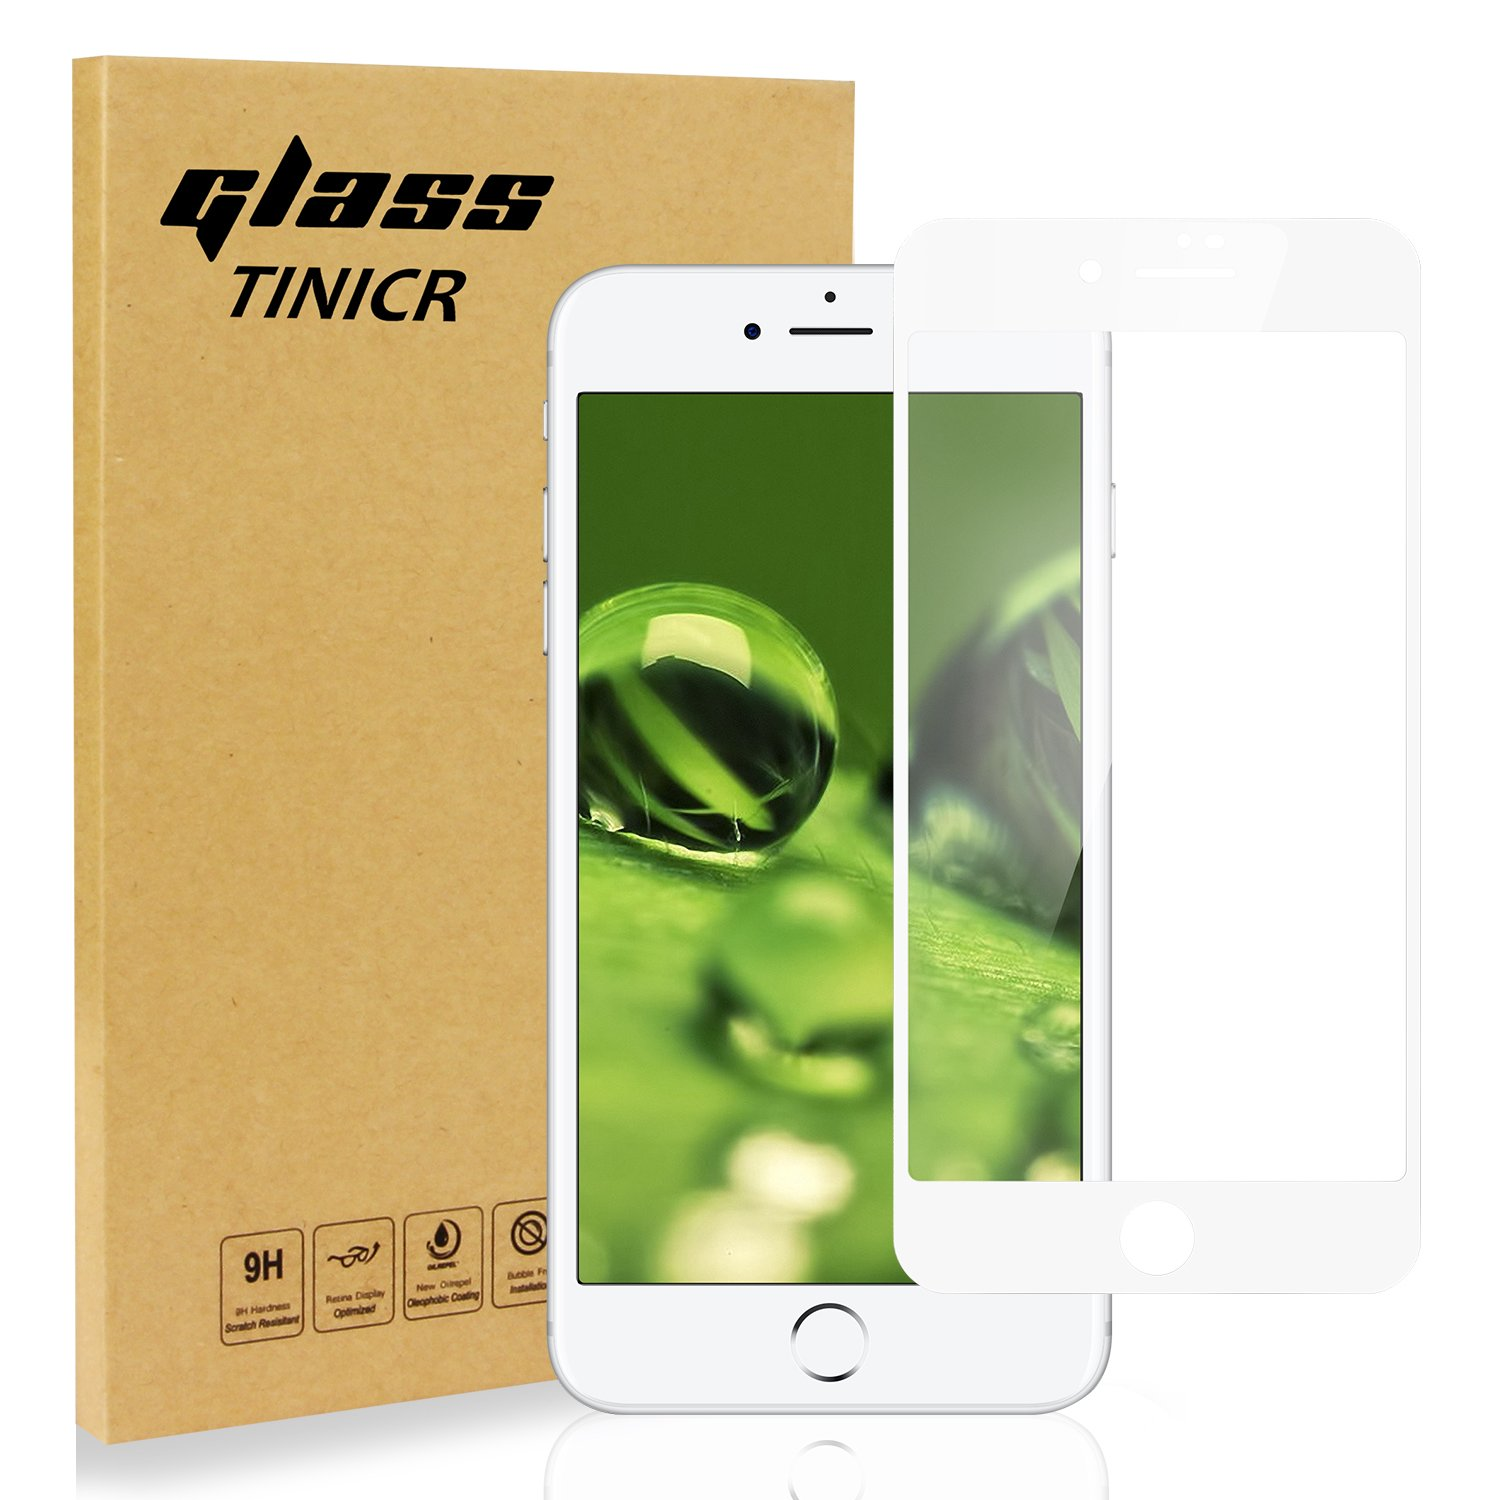 Full Coverage Screen Protector for iPhone 8 Plus 7 Plus, TINICR 4D Curved Soft Edge Anti-Scratch Bubble FreeTempered Glass Screen Cover Shield for Apple iPhone 8 Plus 7 Plus (5.5 '')